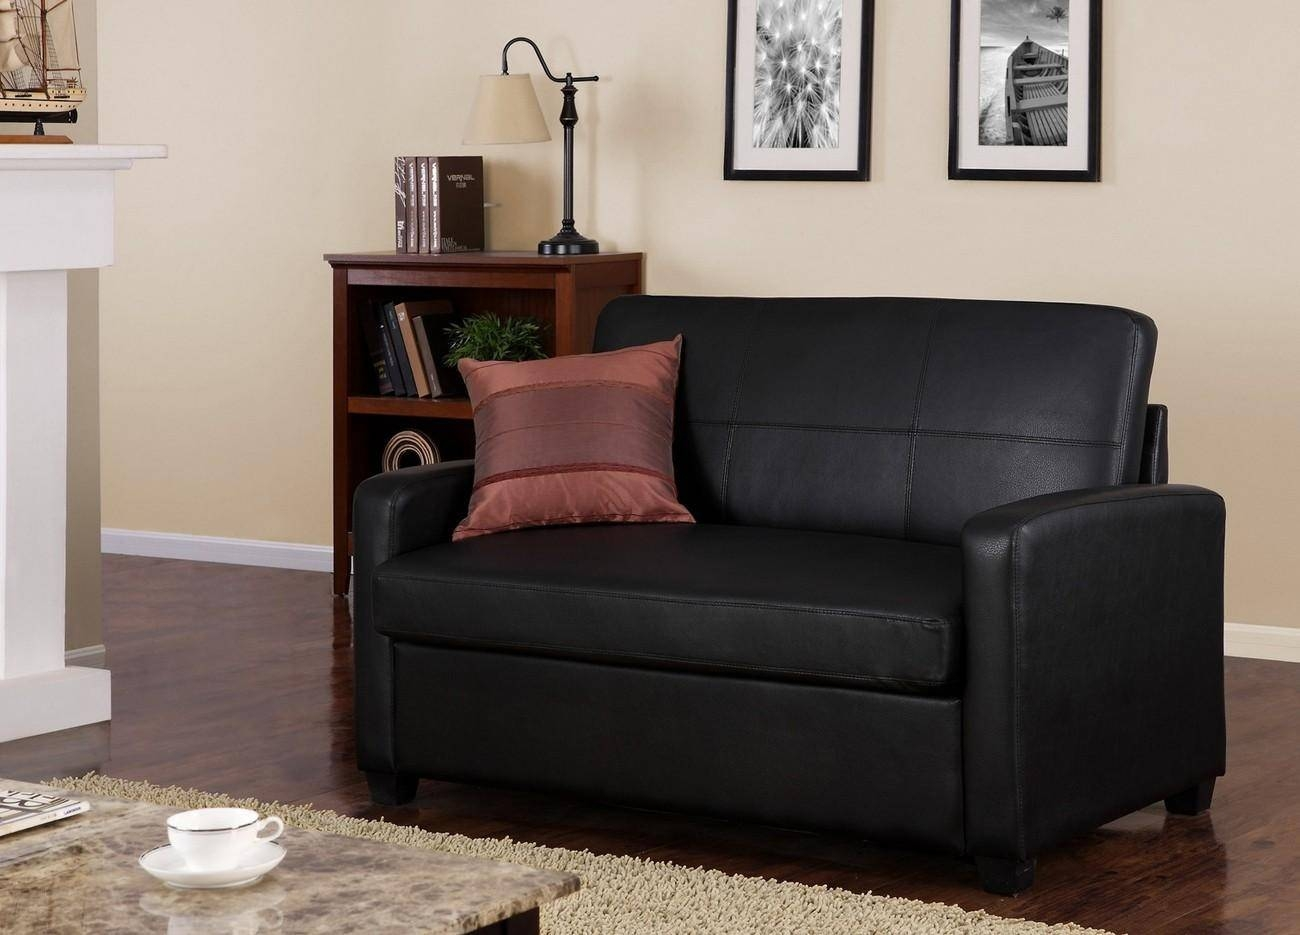 20 Best Mainstay Sofas   Sofa Ideas Inside Mainstay Sofas (View 4 of 15)